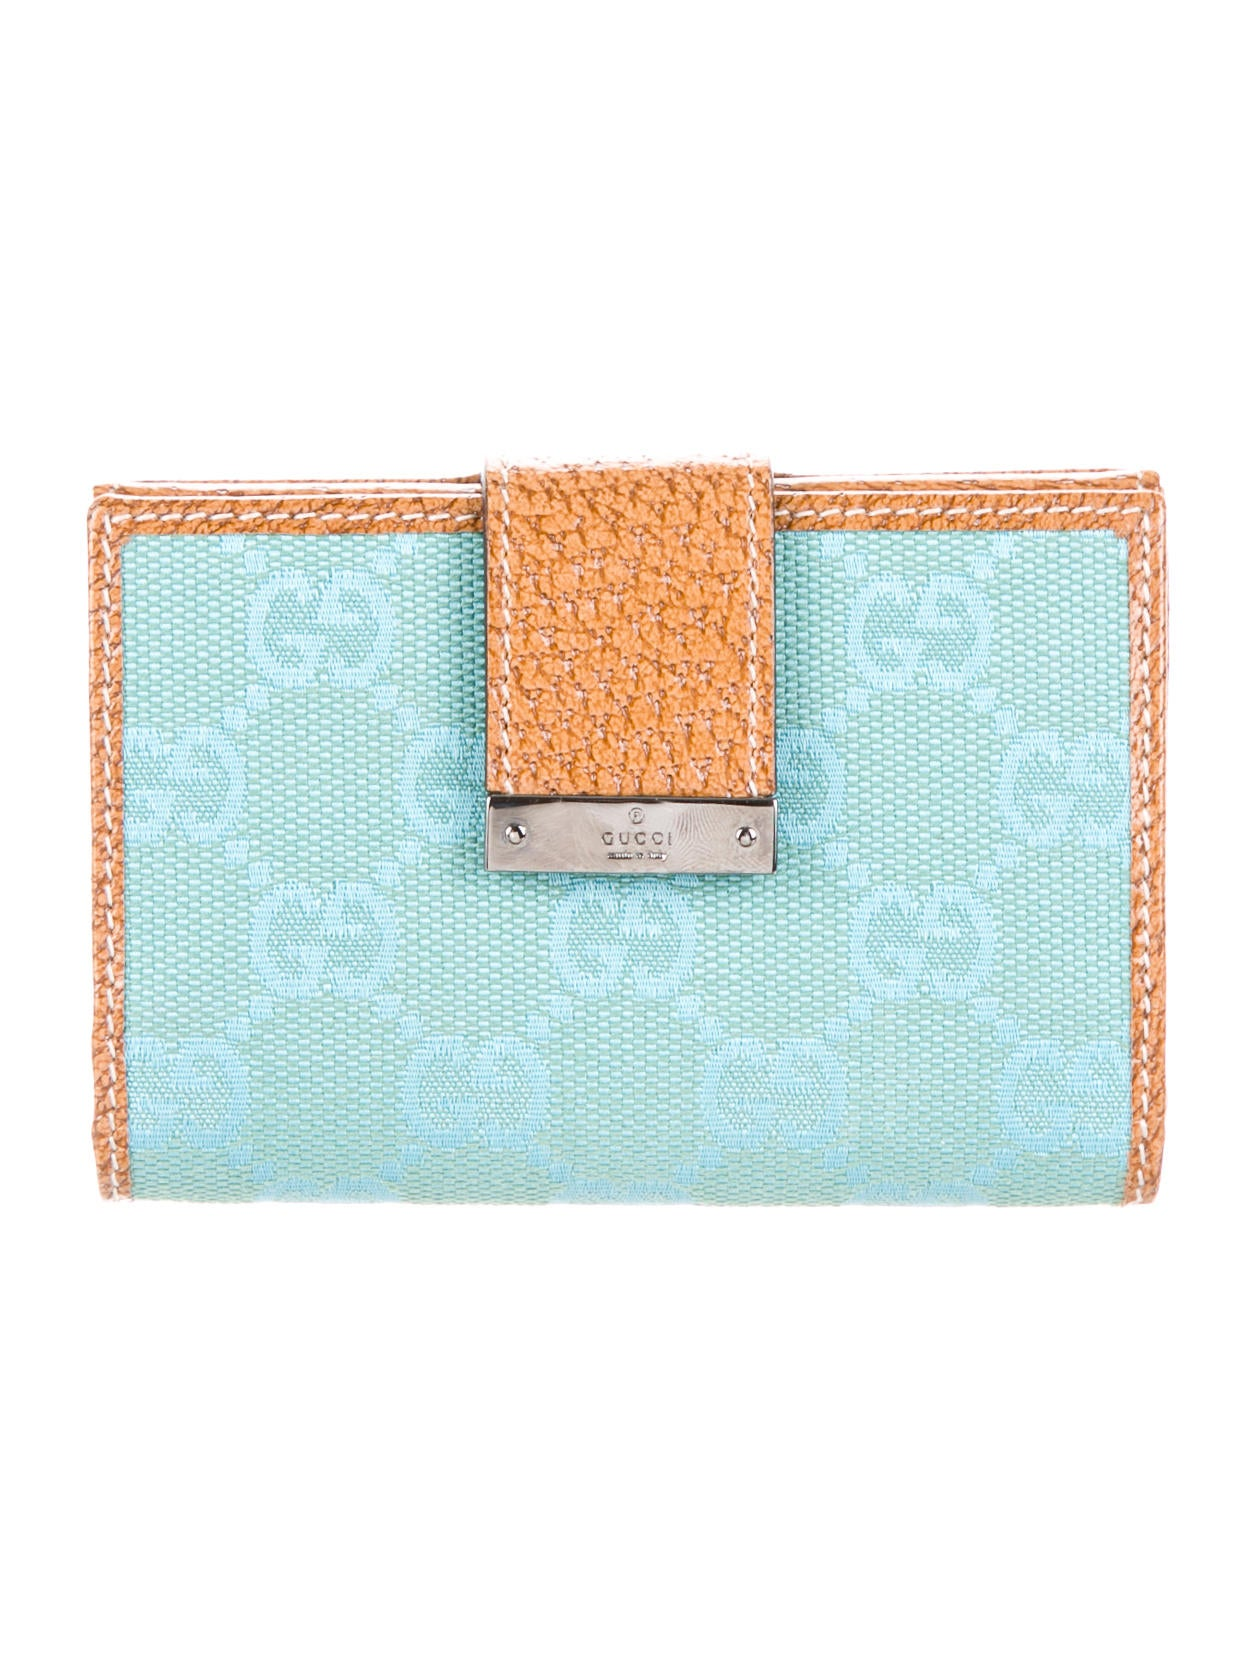 Gucci GG Plus Business Card Holder - Accessories - GUC193411 | The ...